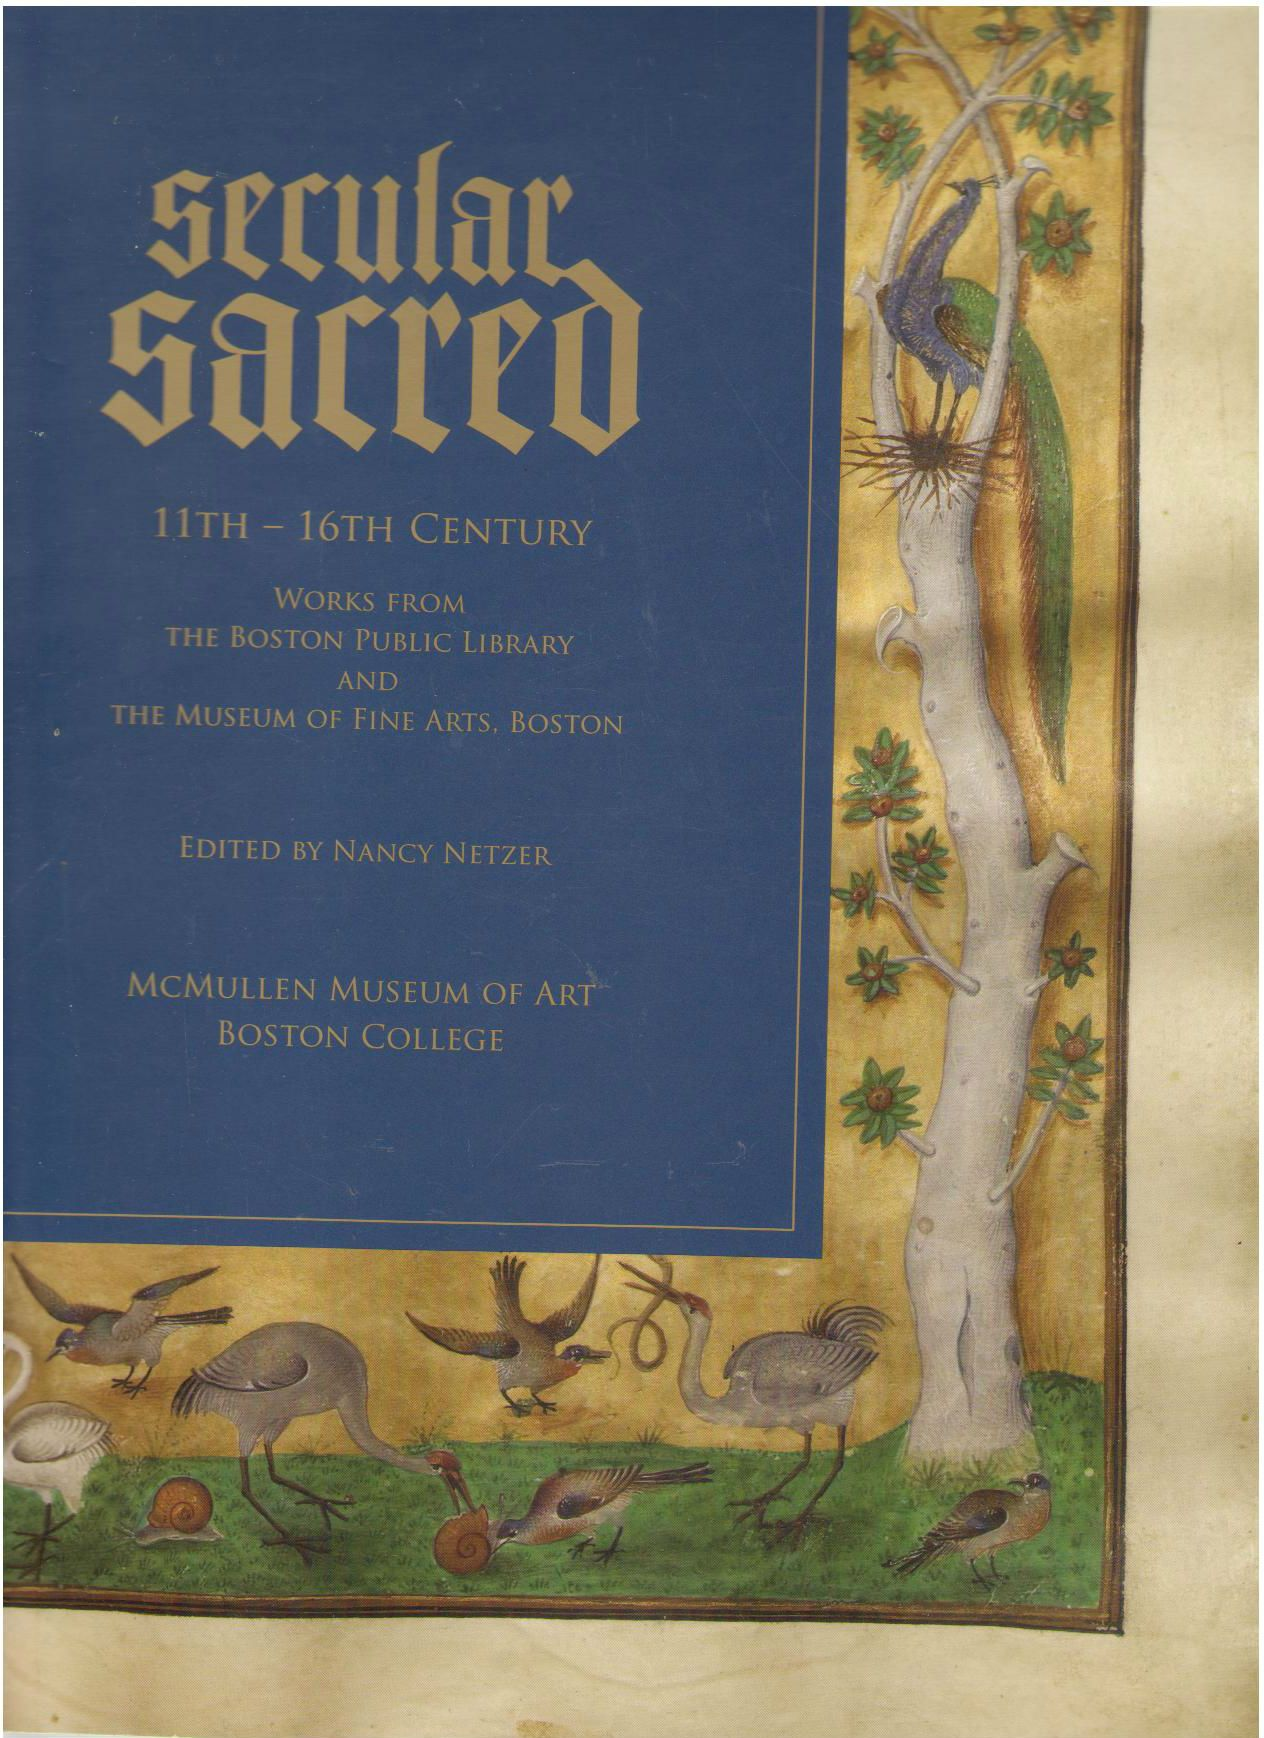 Secular/Sacred 11th-16th Century: Works from the Boston Public Library and the Museum of Fine Arts, Boston